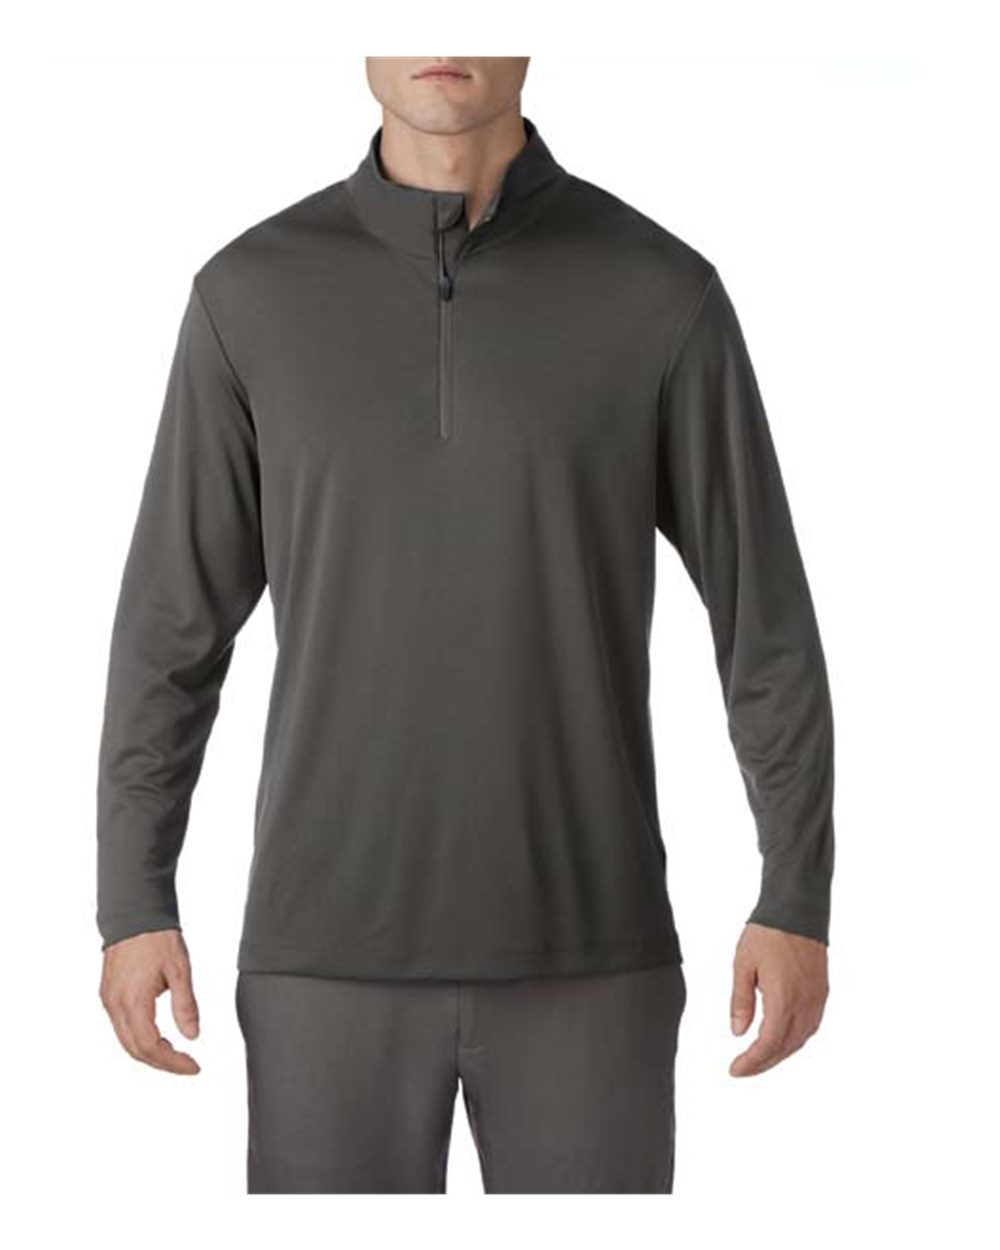 Prim + Preux 2037 - Unisex Energy Long Sleeve 1/4 Zip